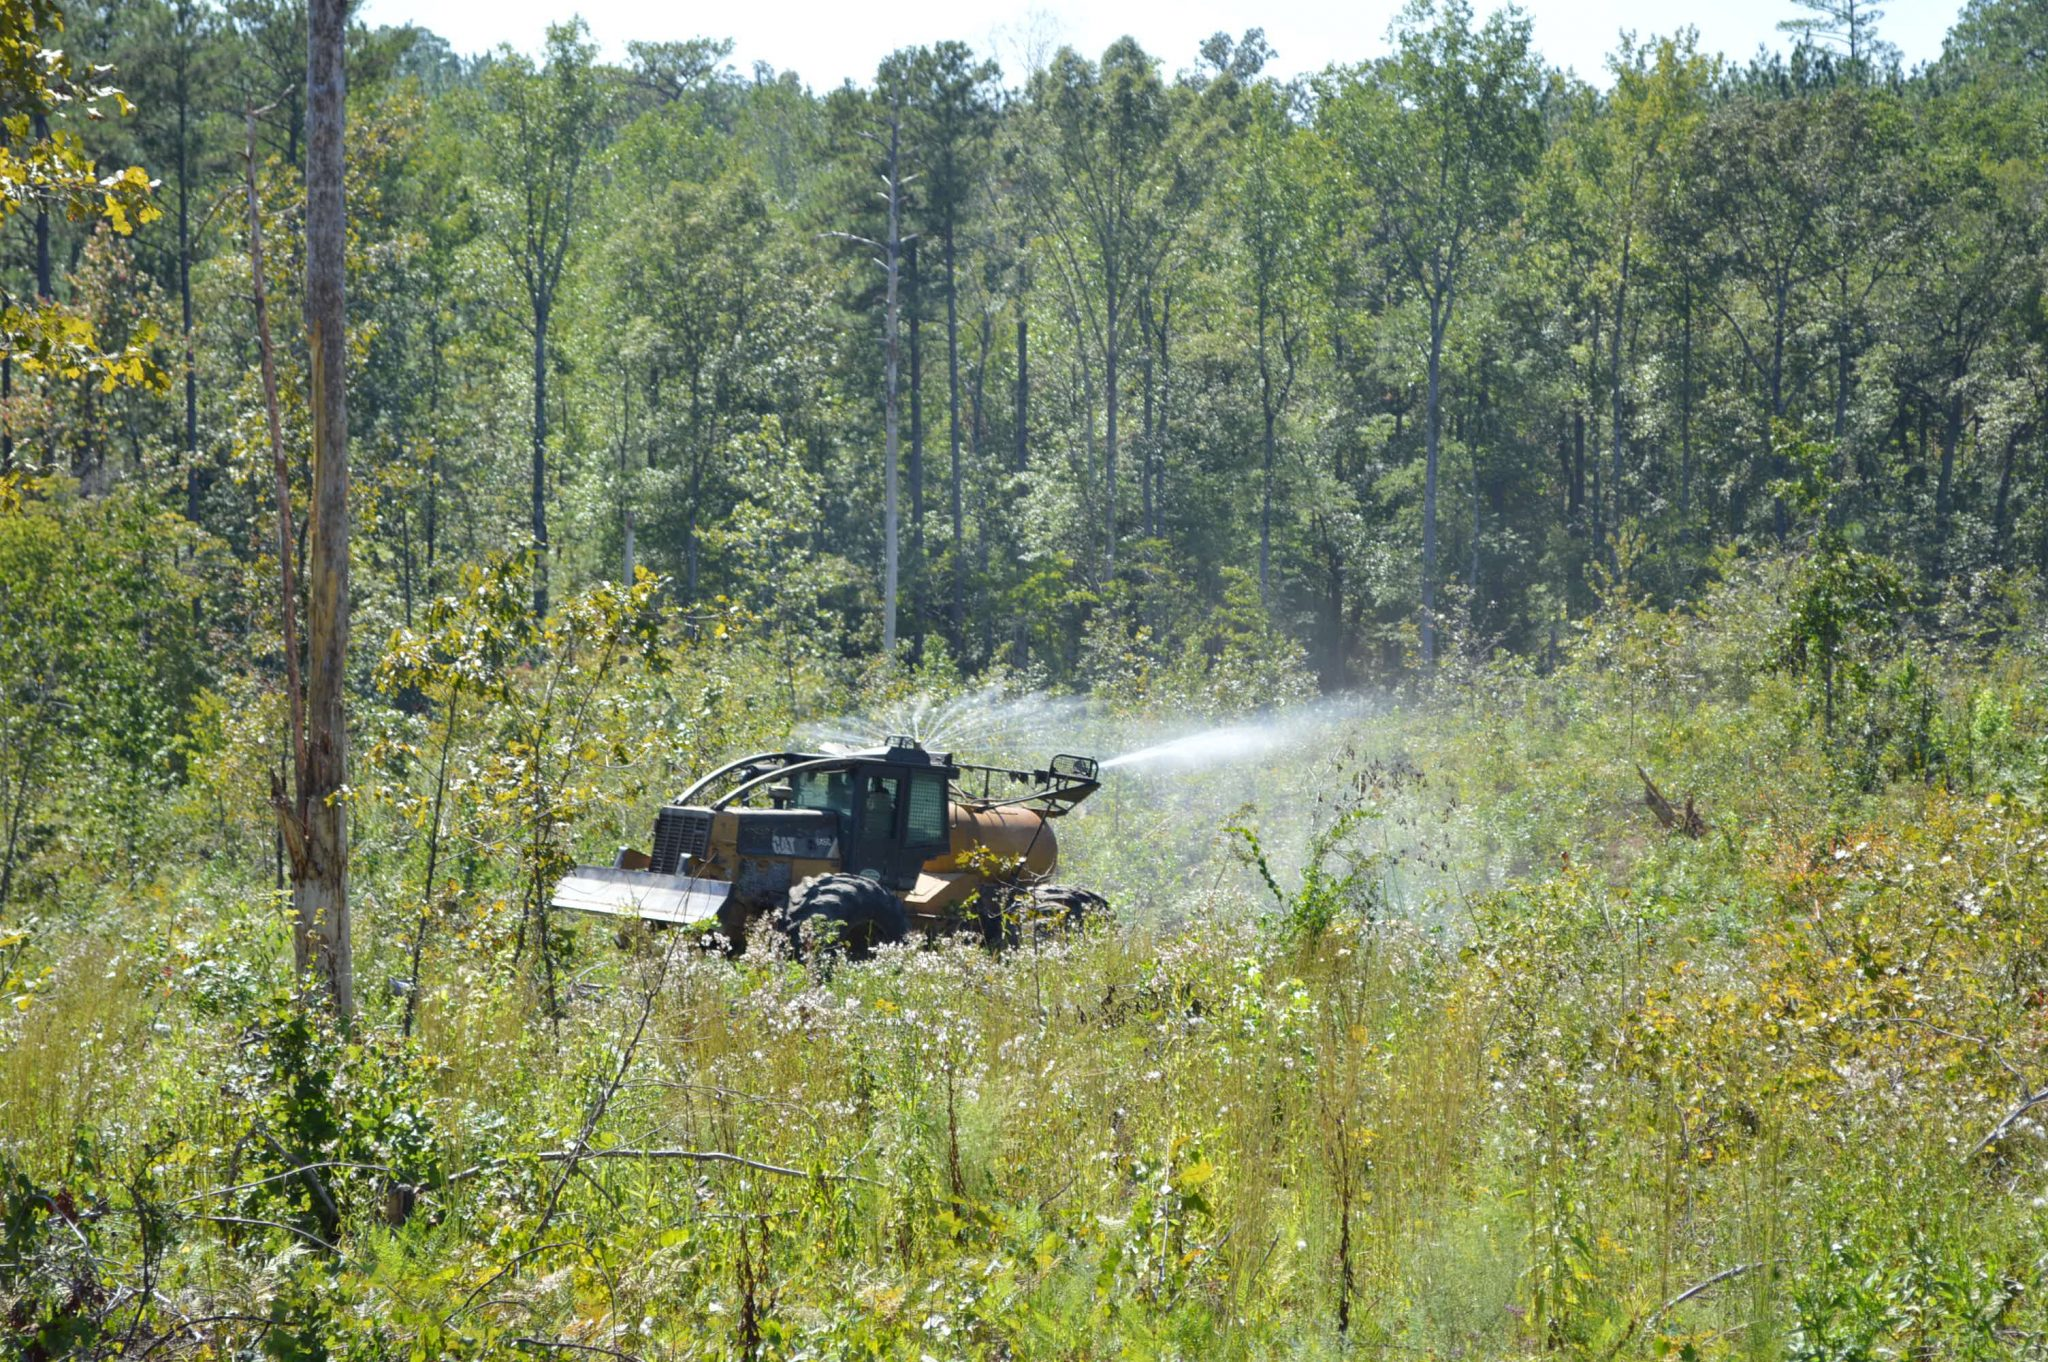 Spraying herbicide in a timber cut area